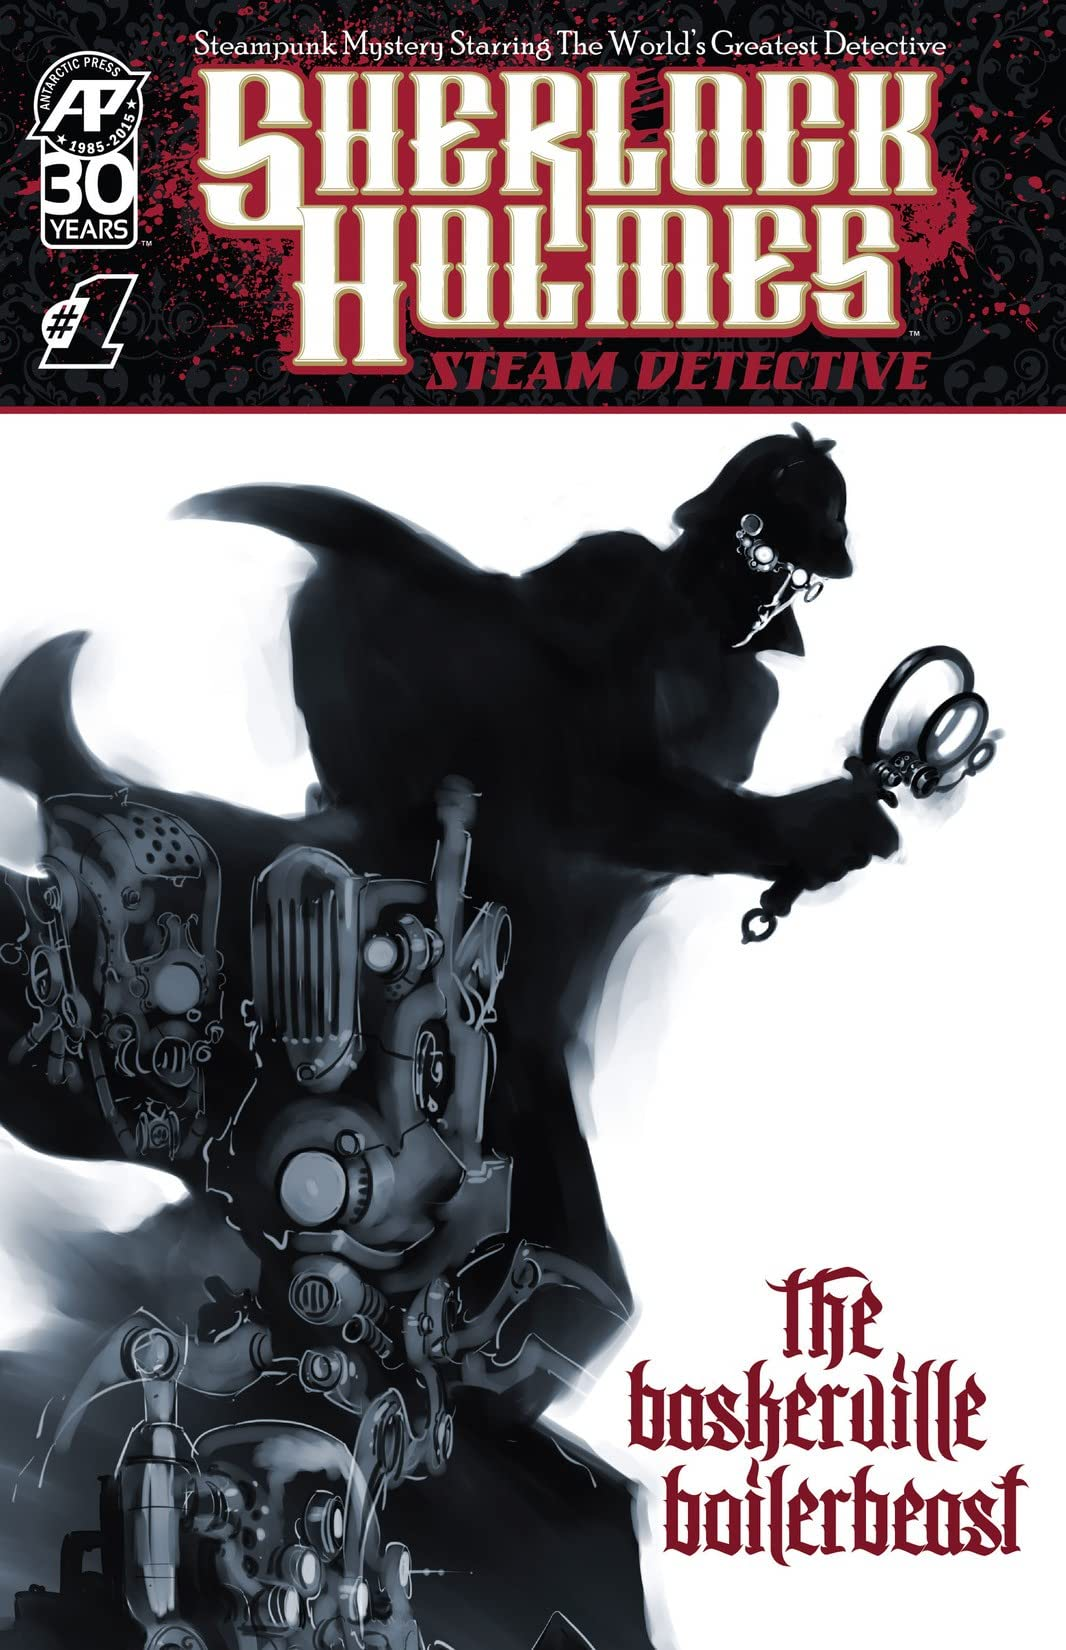 Sherlock Holmes: Steam Detective - The Baskerville Boilerbeast #1